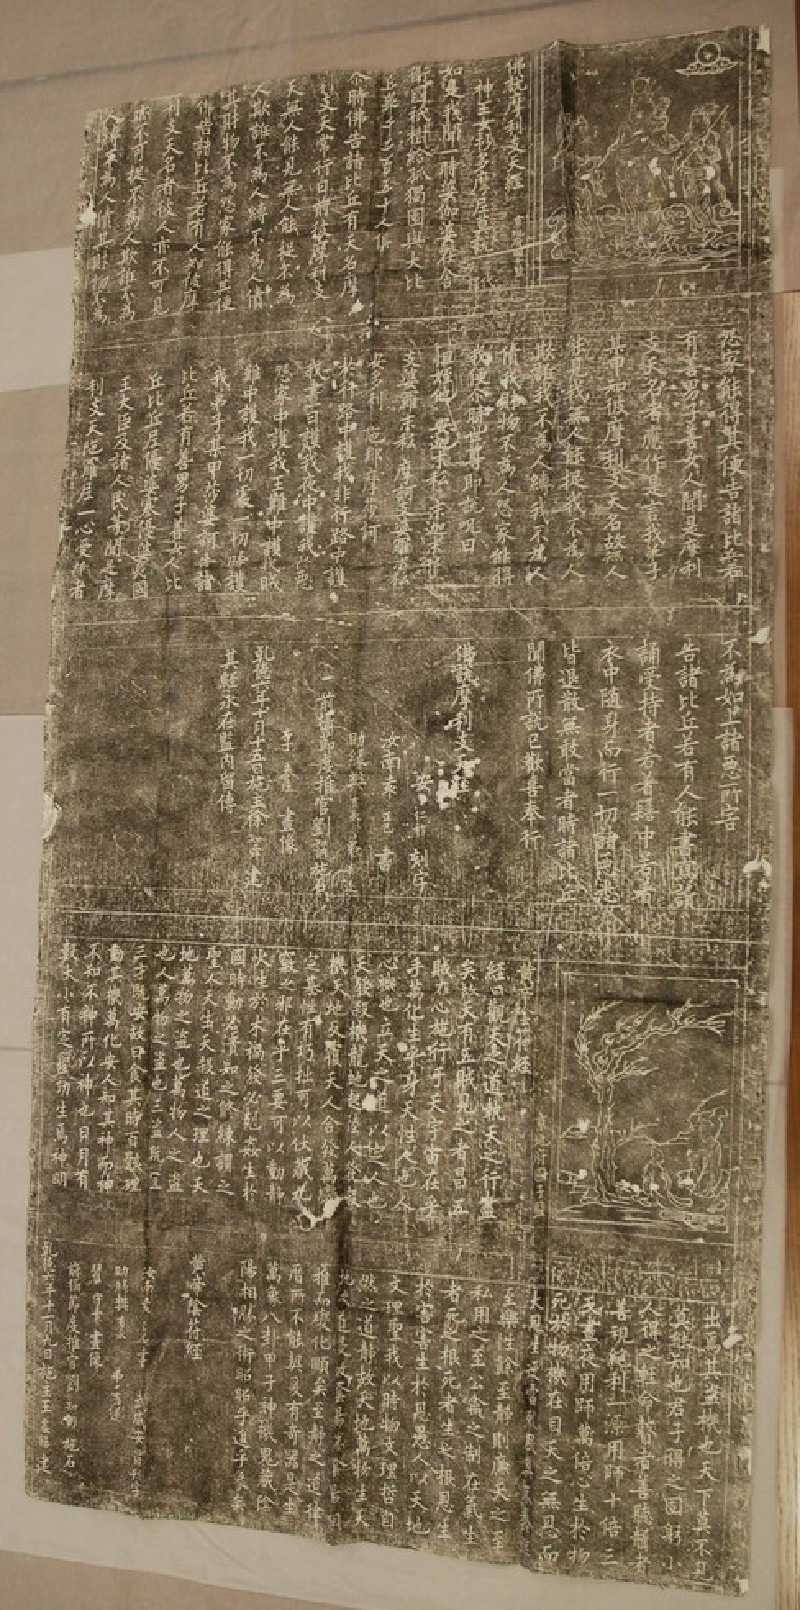 Stele of Buddhist and Daoist scriptures with illustrations